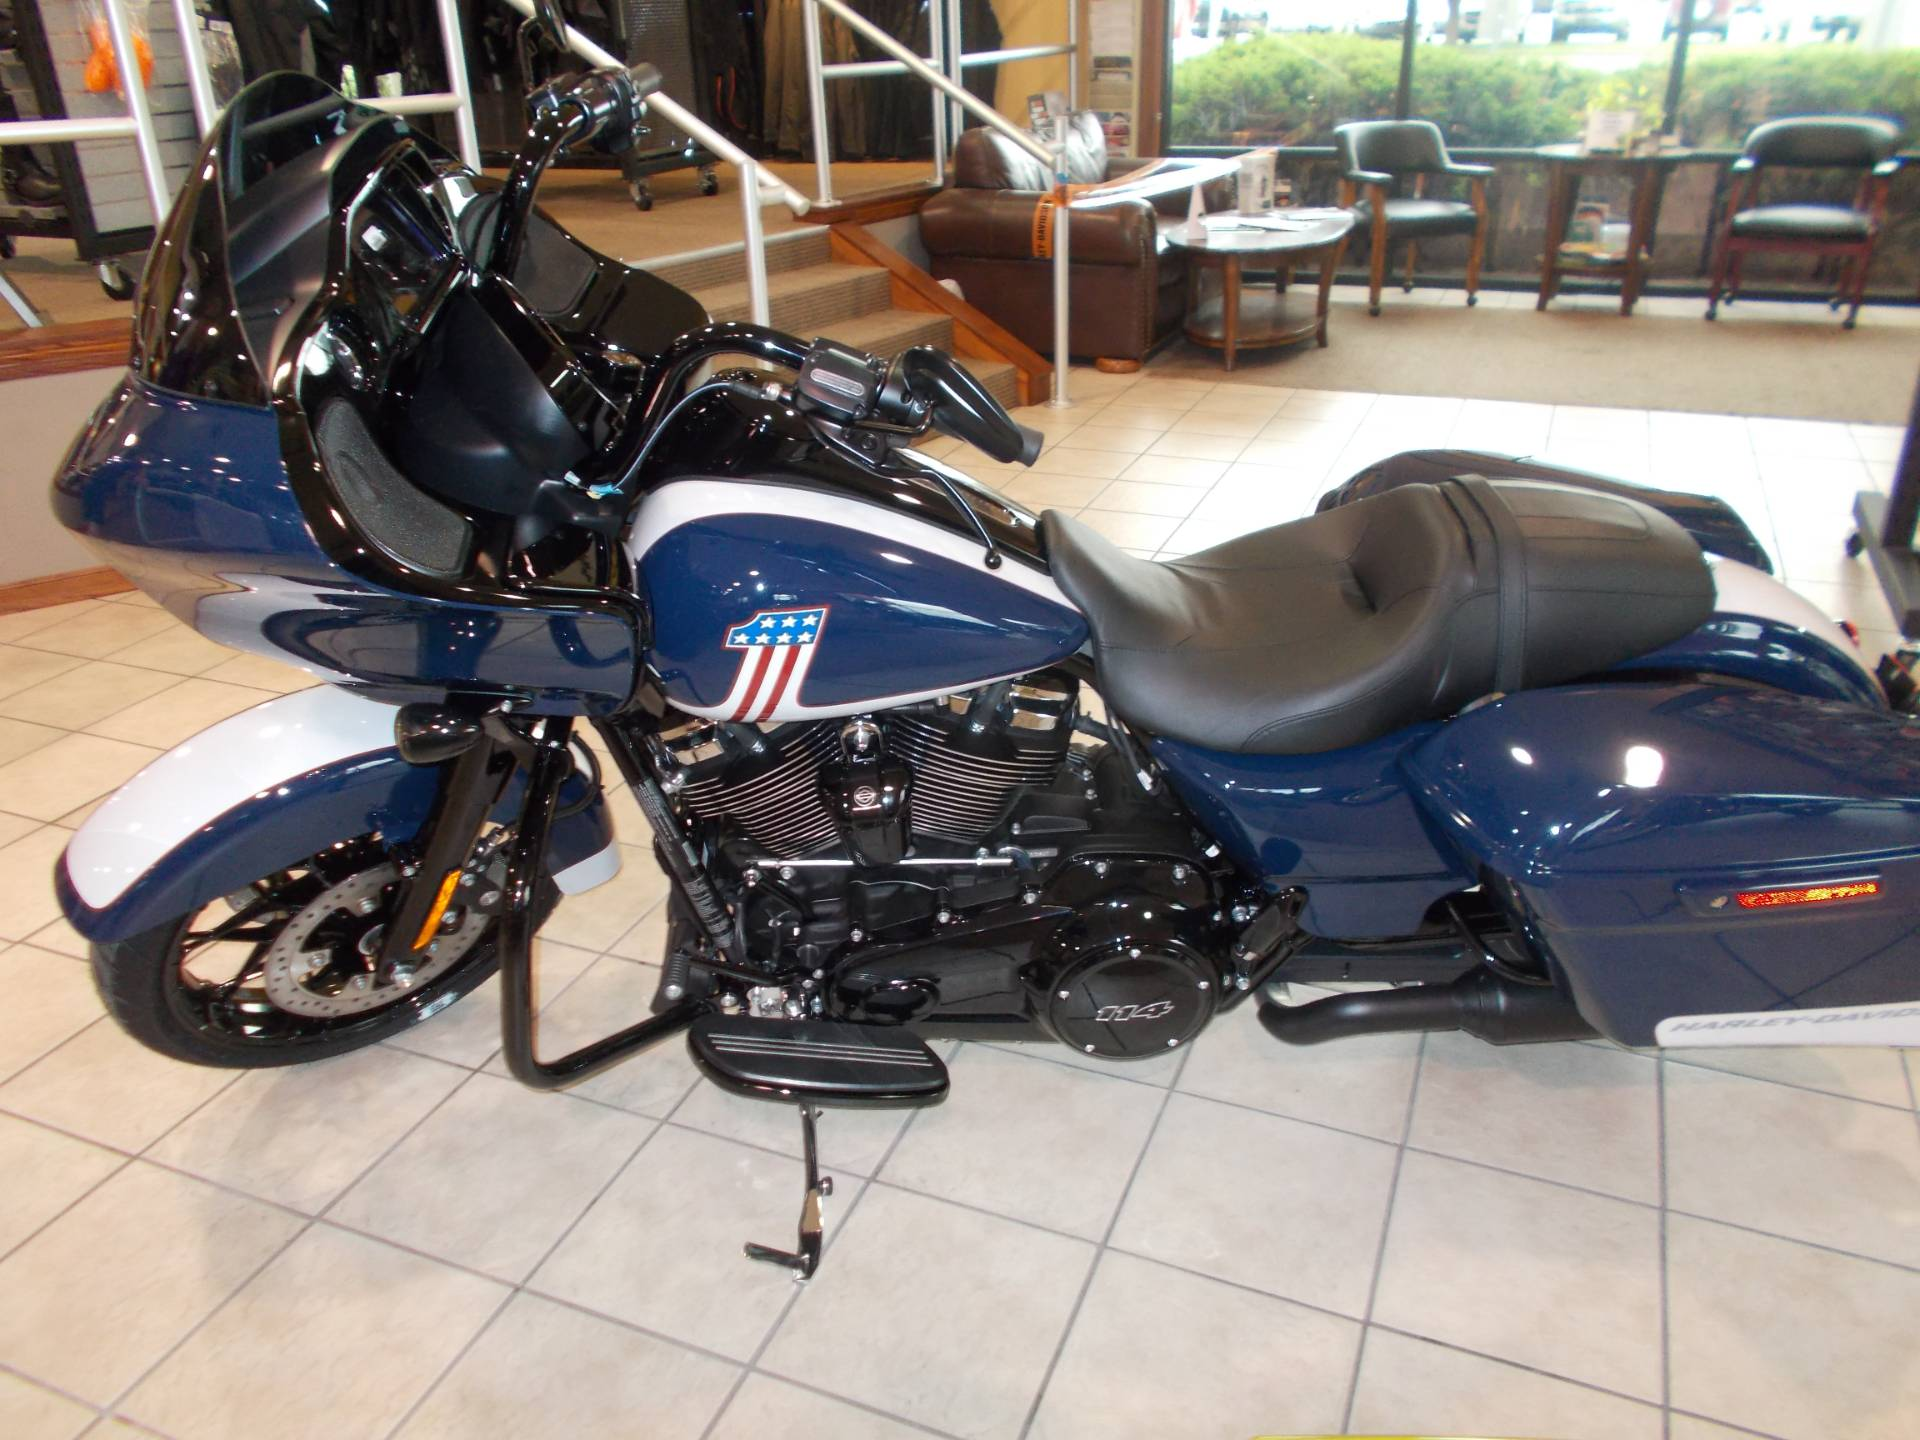 2020 Harley-Davidson ROADGLIDE SPECIAL in Junction City, Kansas - Photo 1